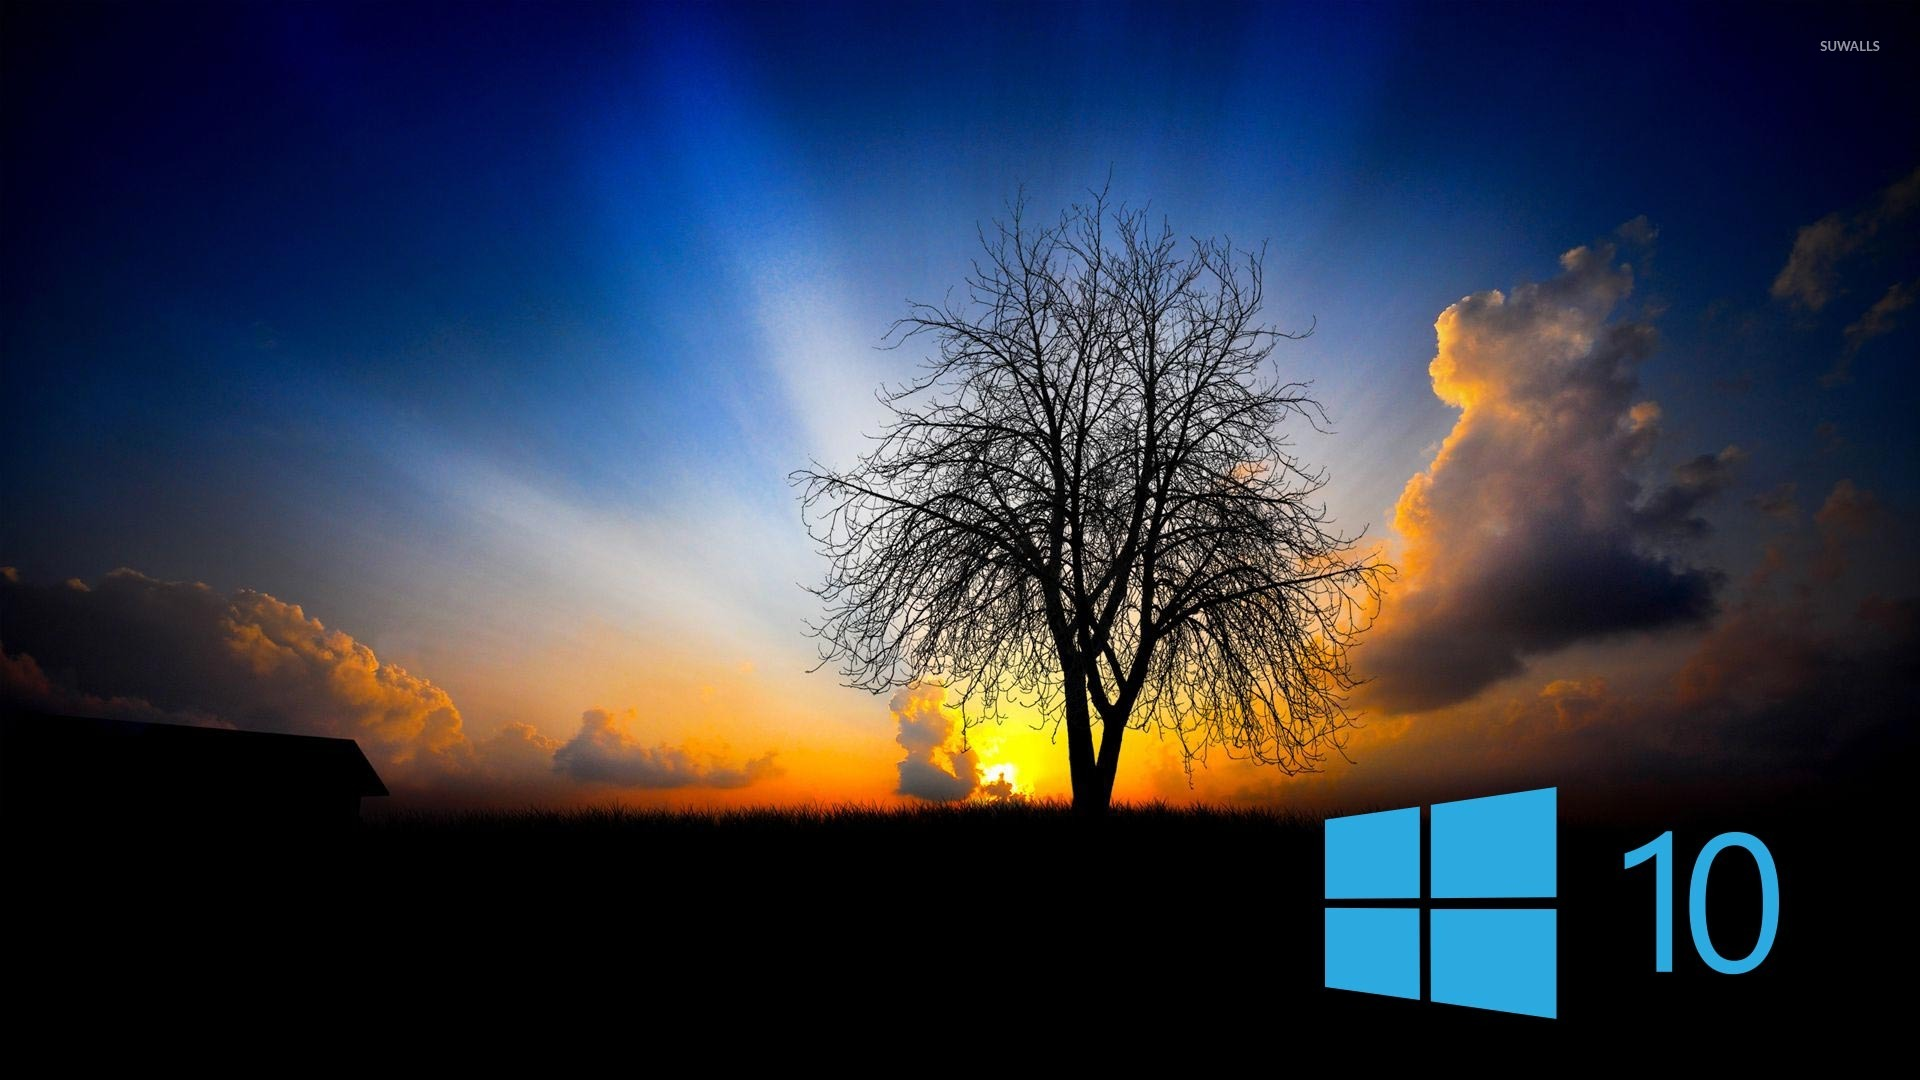 Free Fall Hp Widescreen Wallpapers 400 Stunning Windows 10 Wallpapers Hd Image Collection 2017